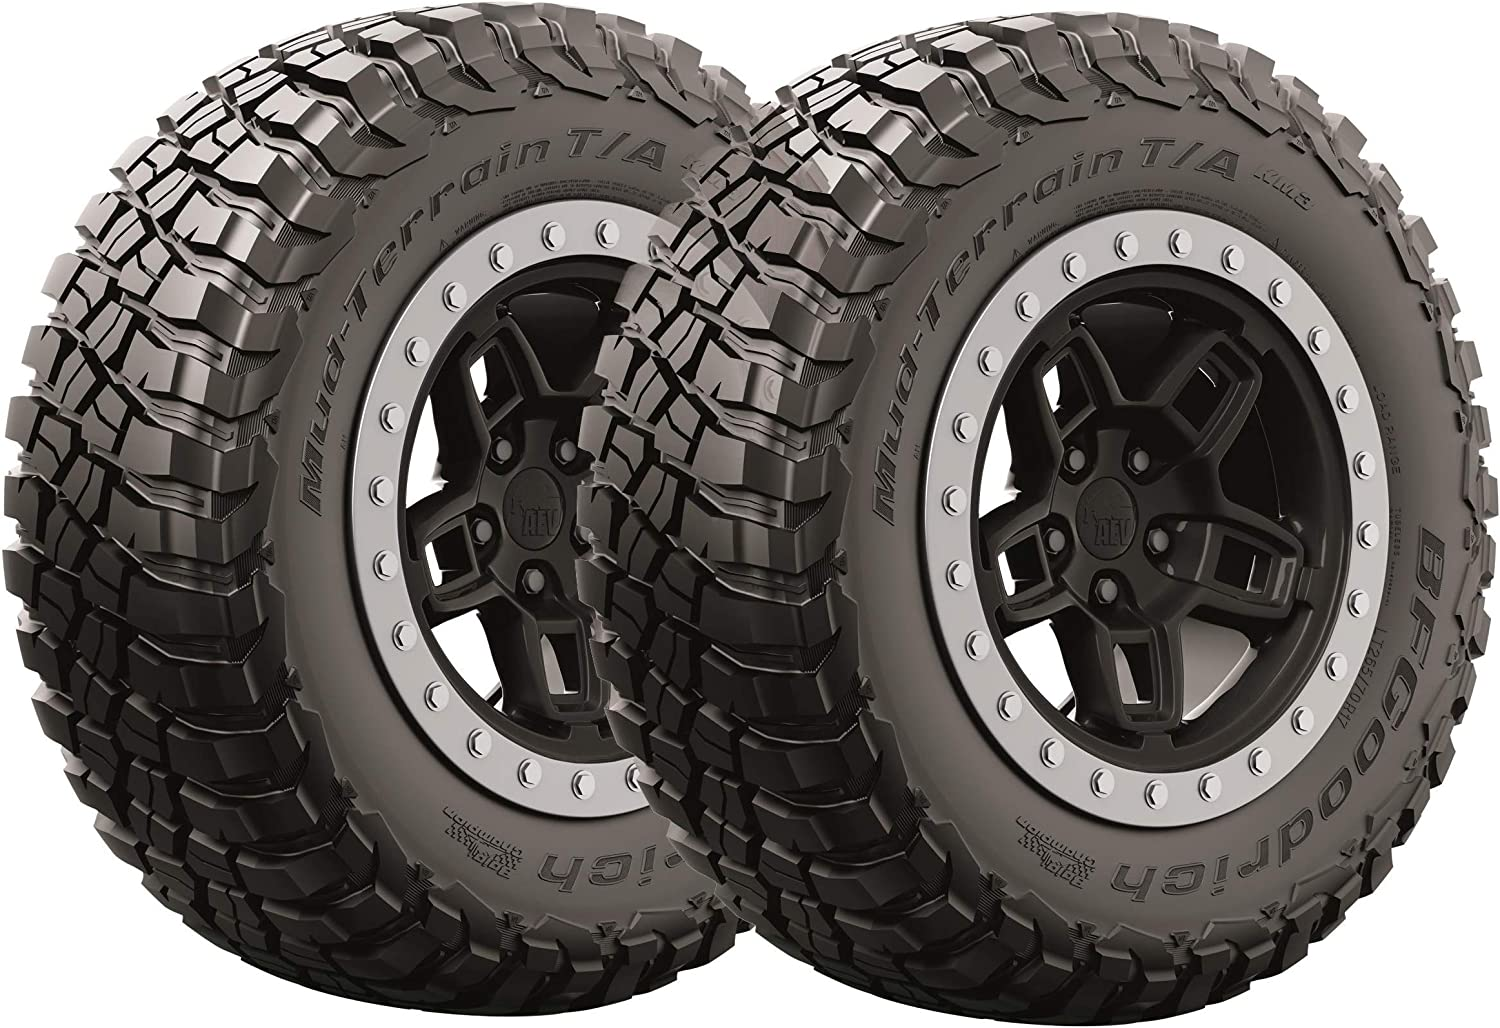 BFGoodrich Mud-Terrain T/A KM3 All-Season Radial Tire-32x10R15NHS/8PR